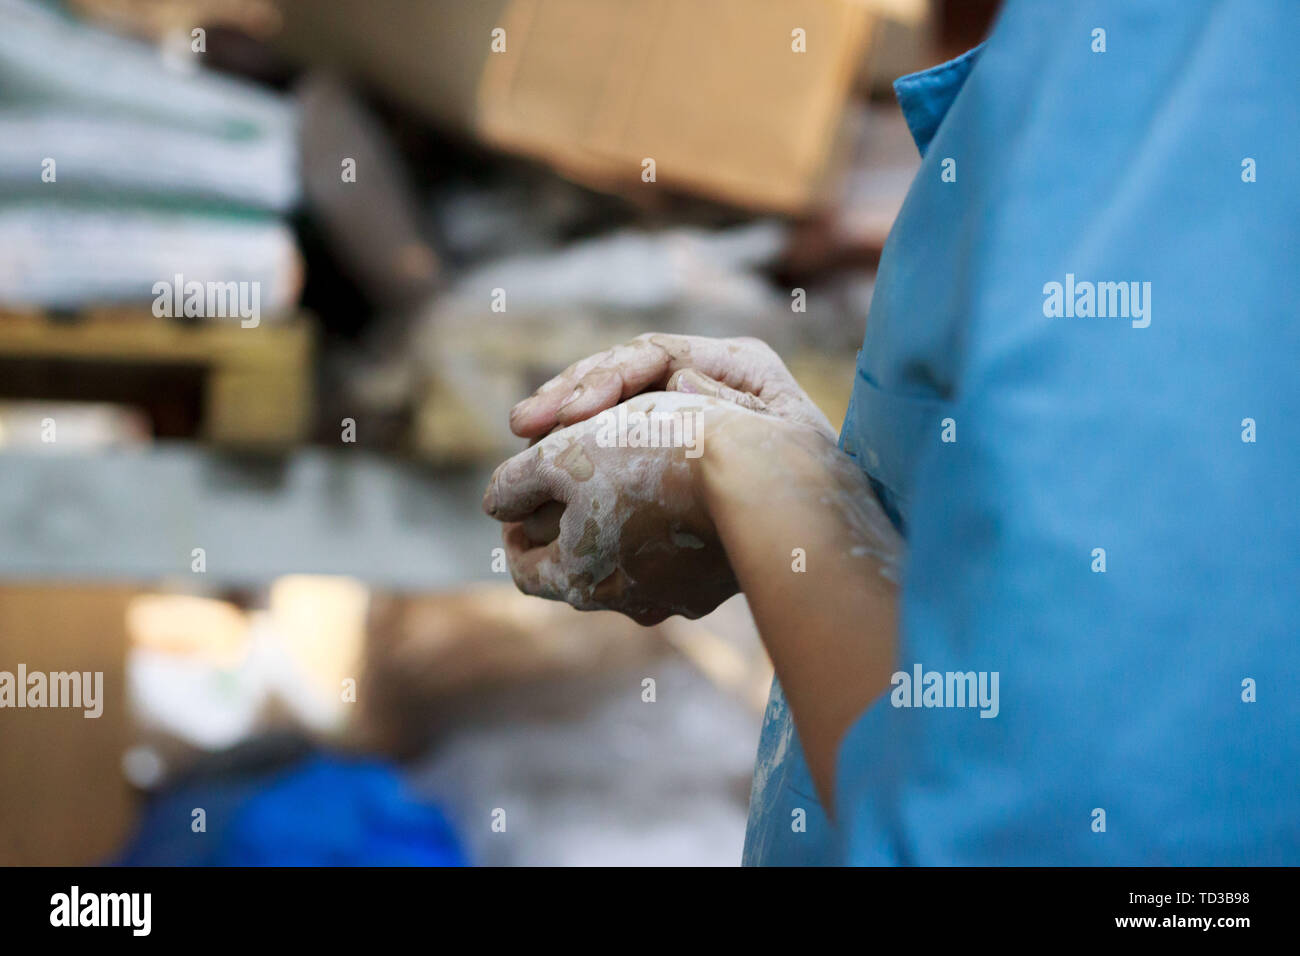 young woman came to study pottery and ceramics. Hands in white clay. training, reportage. Stock Photo